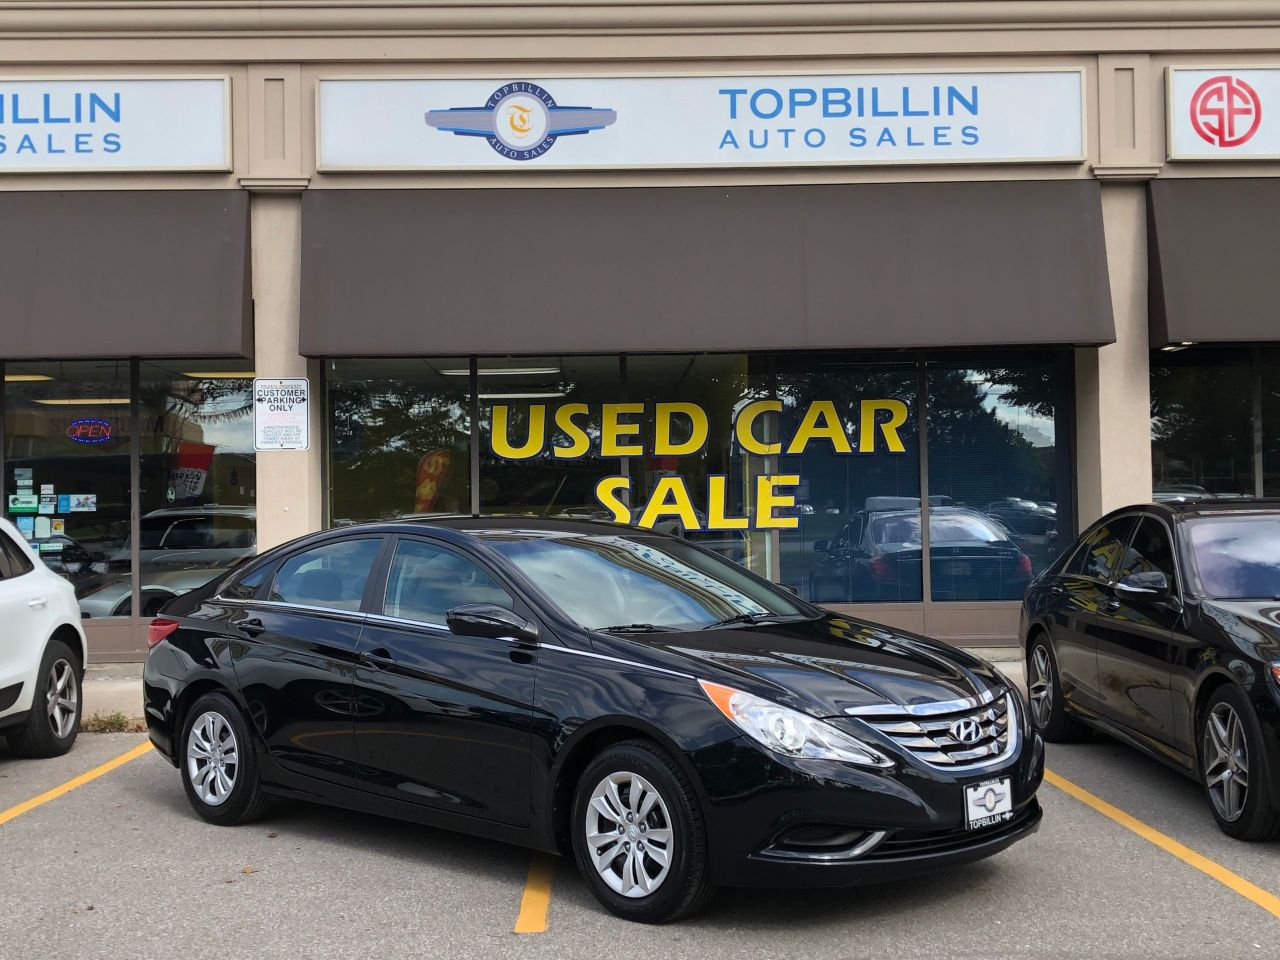 2013 Hyundai Sonata Only 77K Kms, Certified, 1 Owner